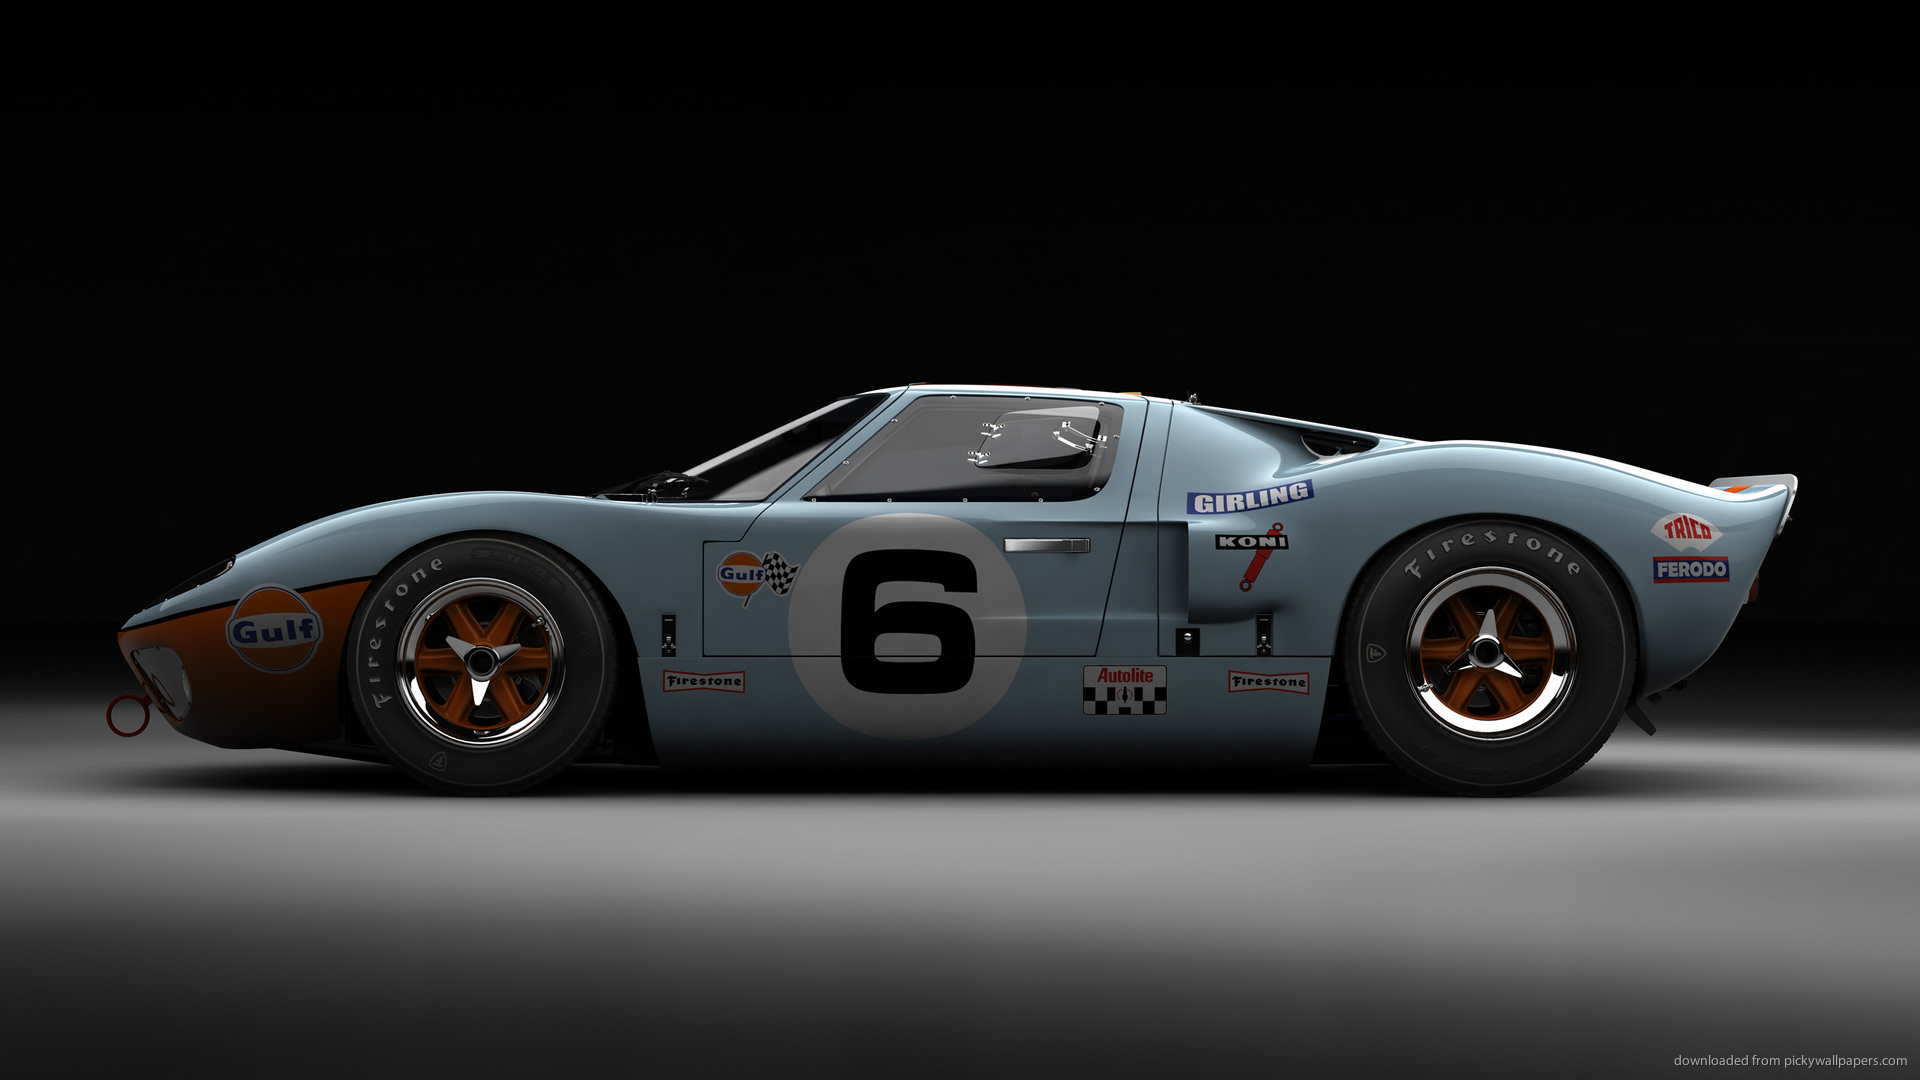 Ford Gt40 Wallpaper 4303 Hd Wallpapers in Cars   Imagescicom 1920x1080